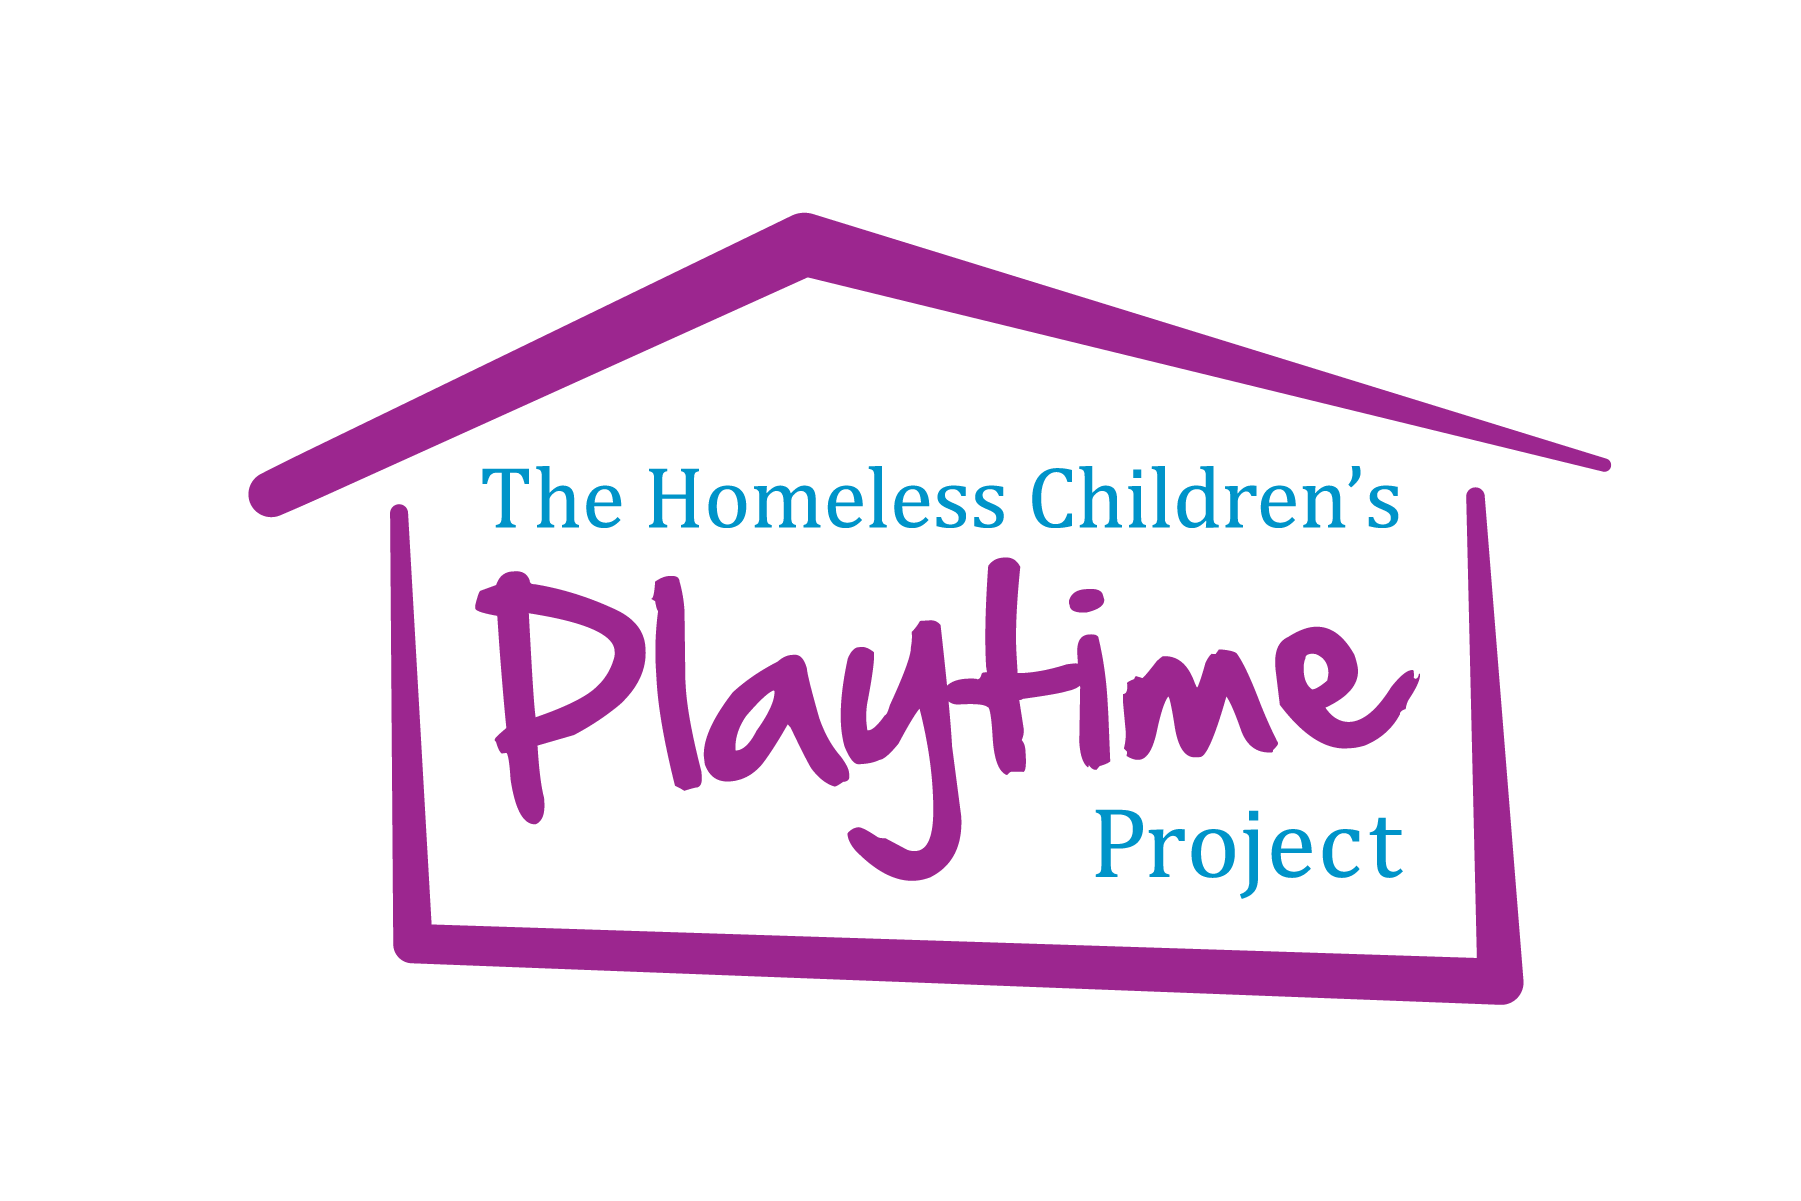 A logo for a nonprofit organization focused on homeless children. The logo depicts the shape of a home.